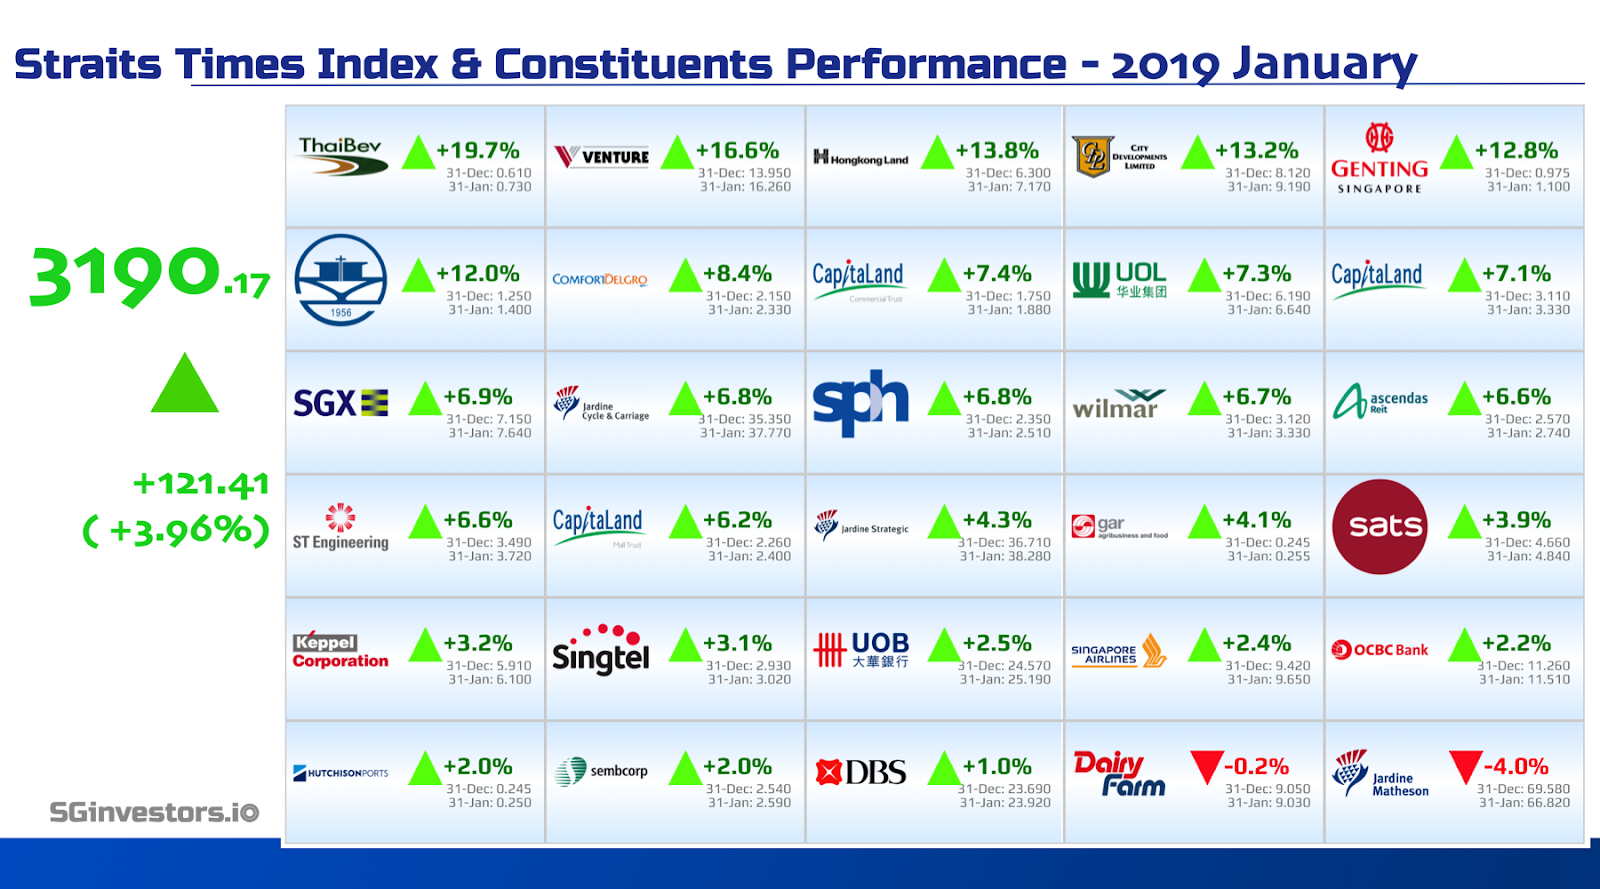 Performance of Straits Times Index (STI) Constituents in January 2018